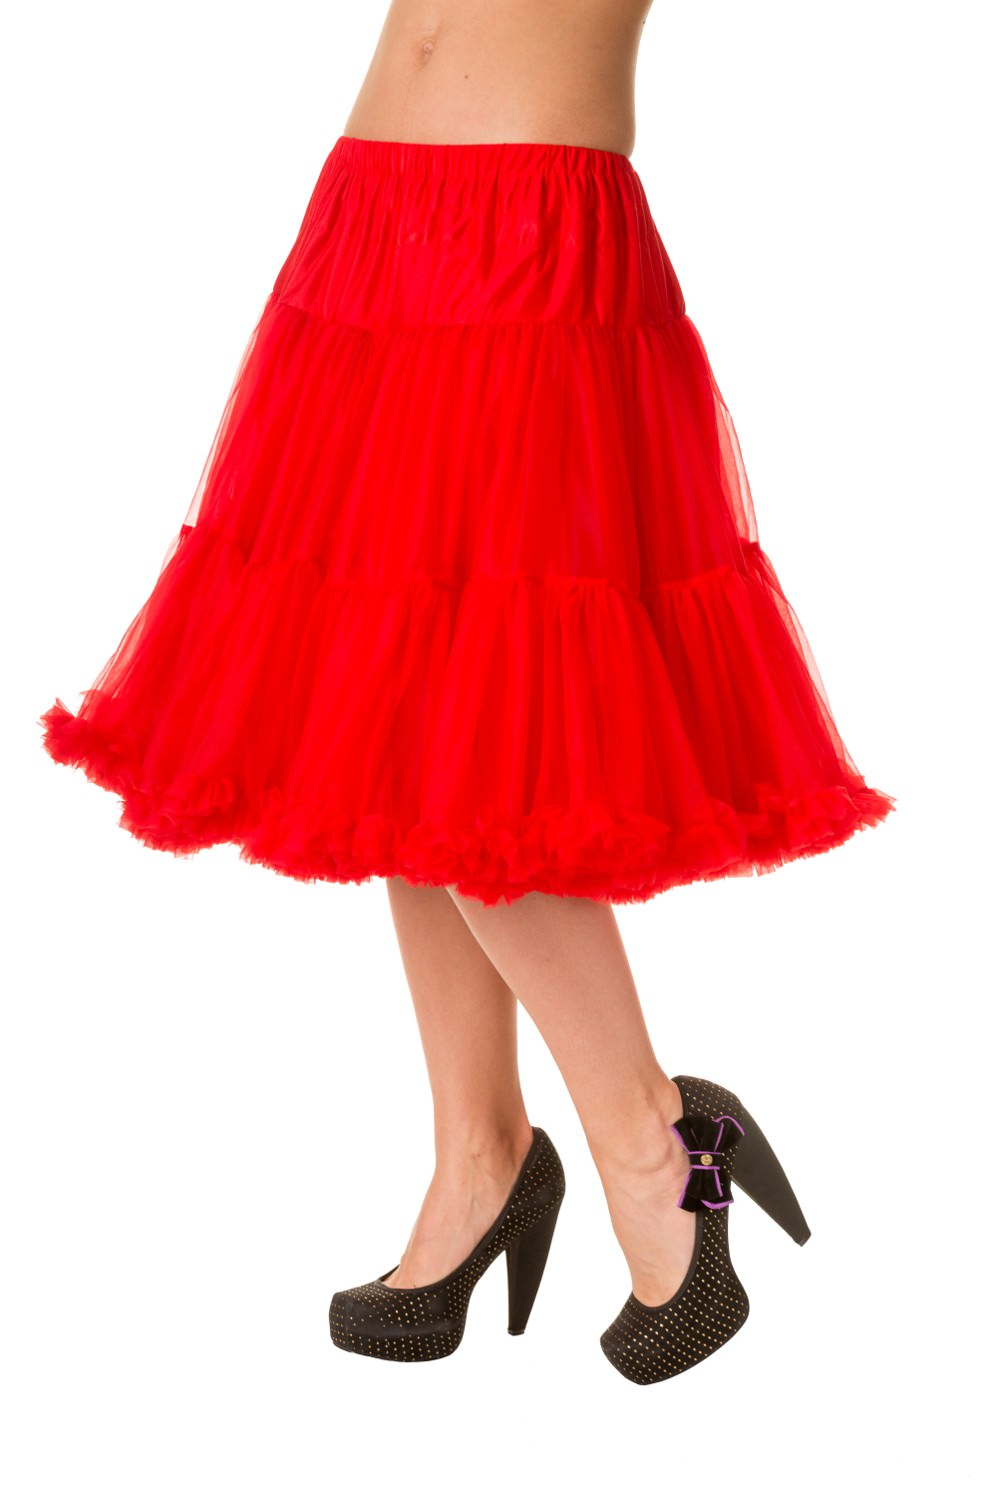 Banned Retro 50s Starlite Red Petticoat